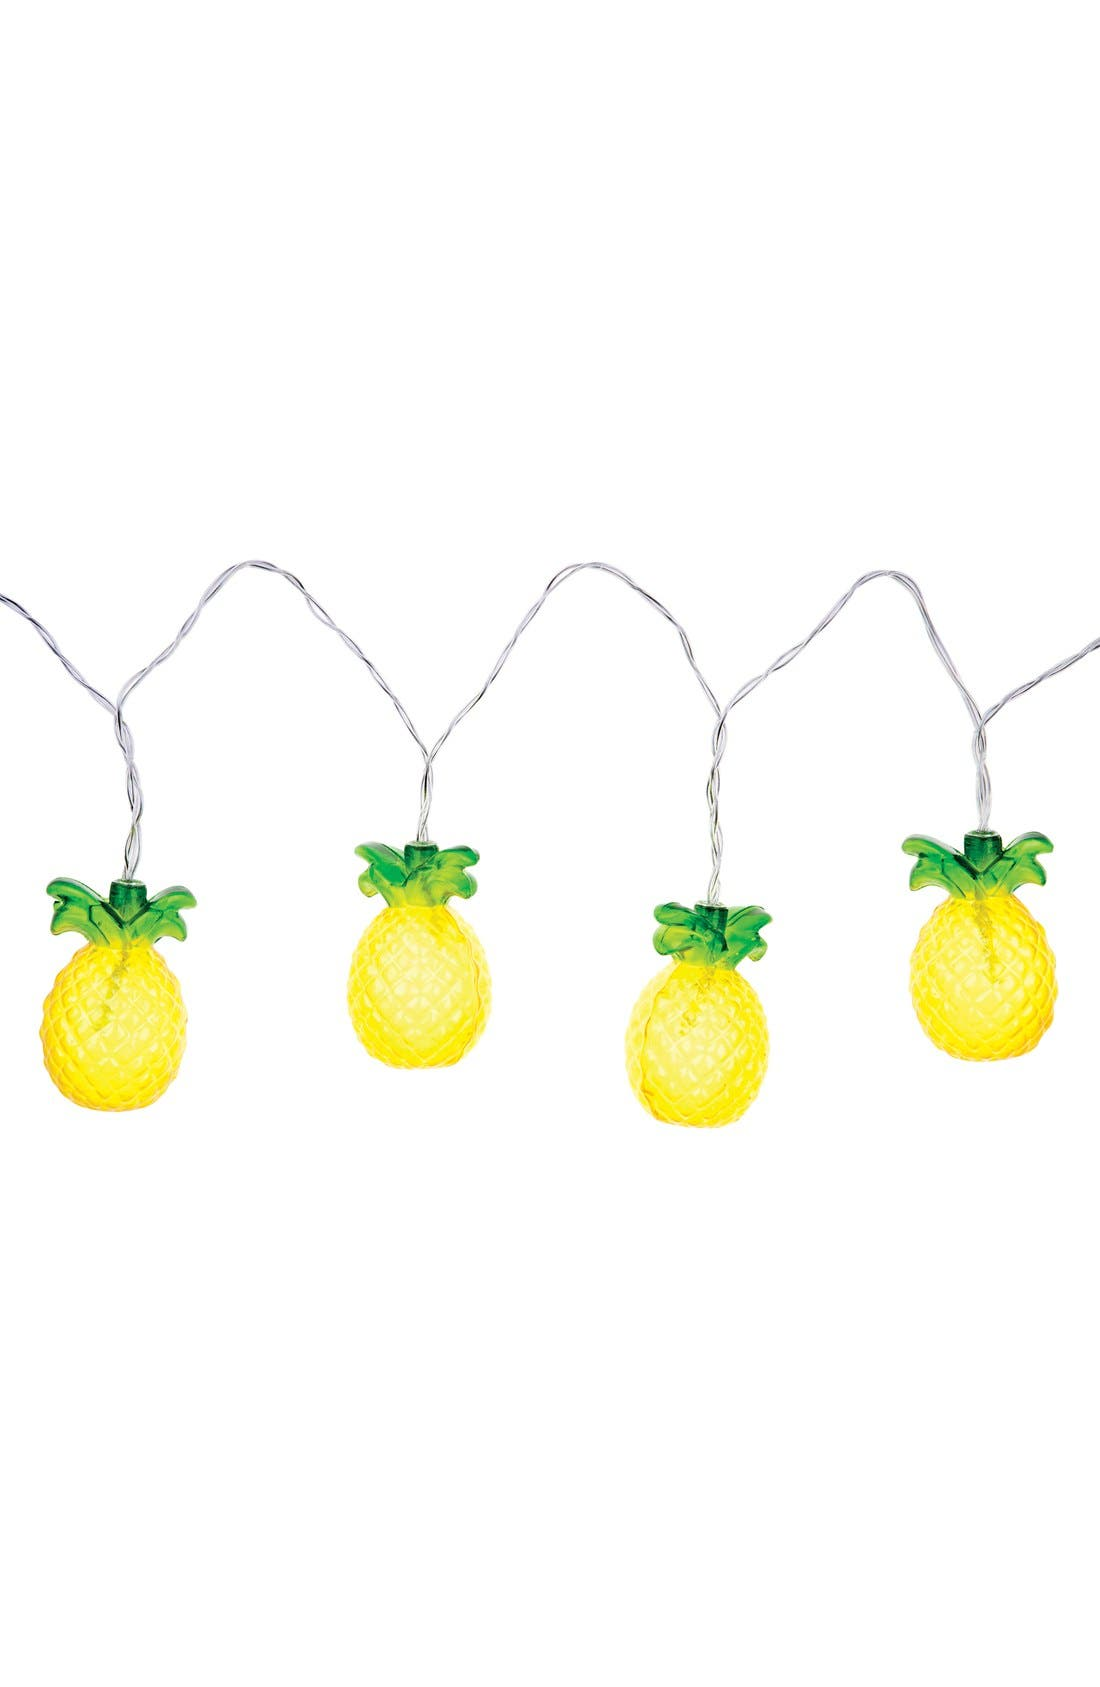 Main Image - Sunnylife Pineapple String Lights